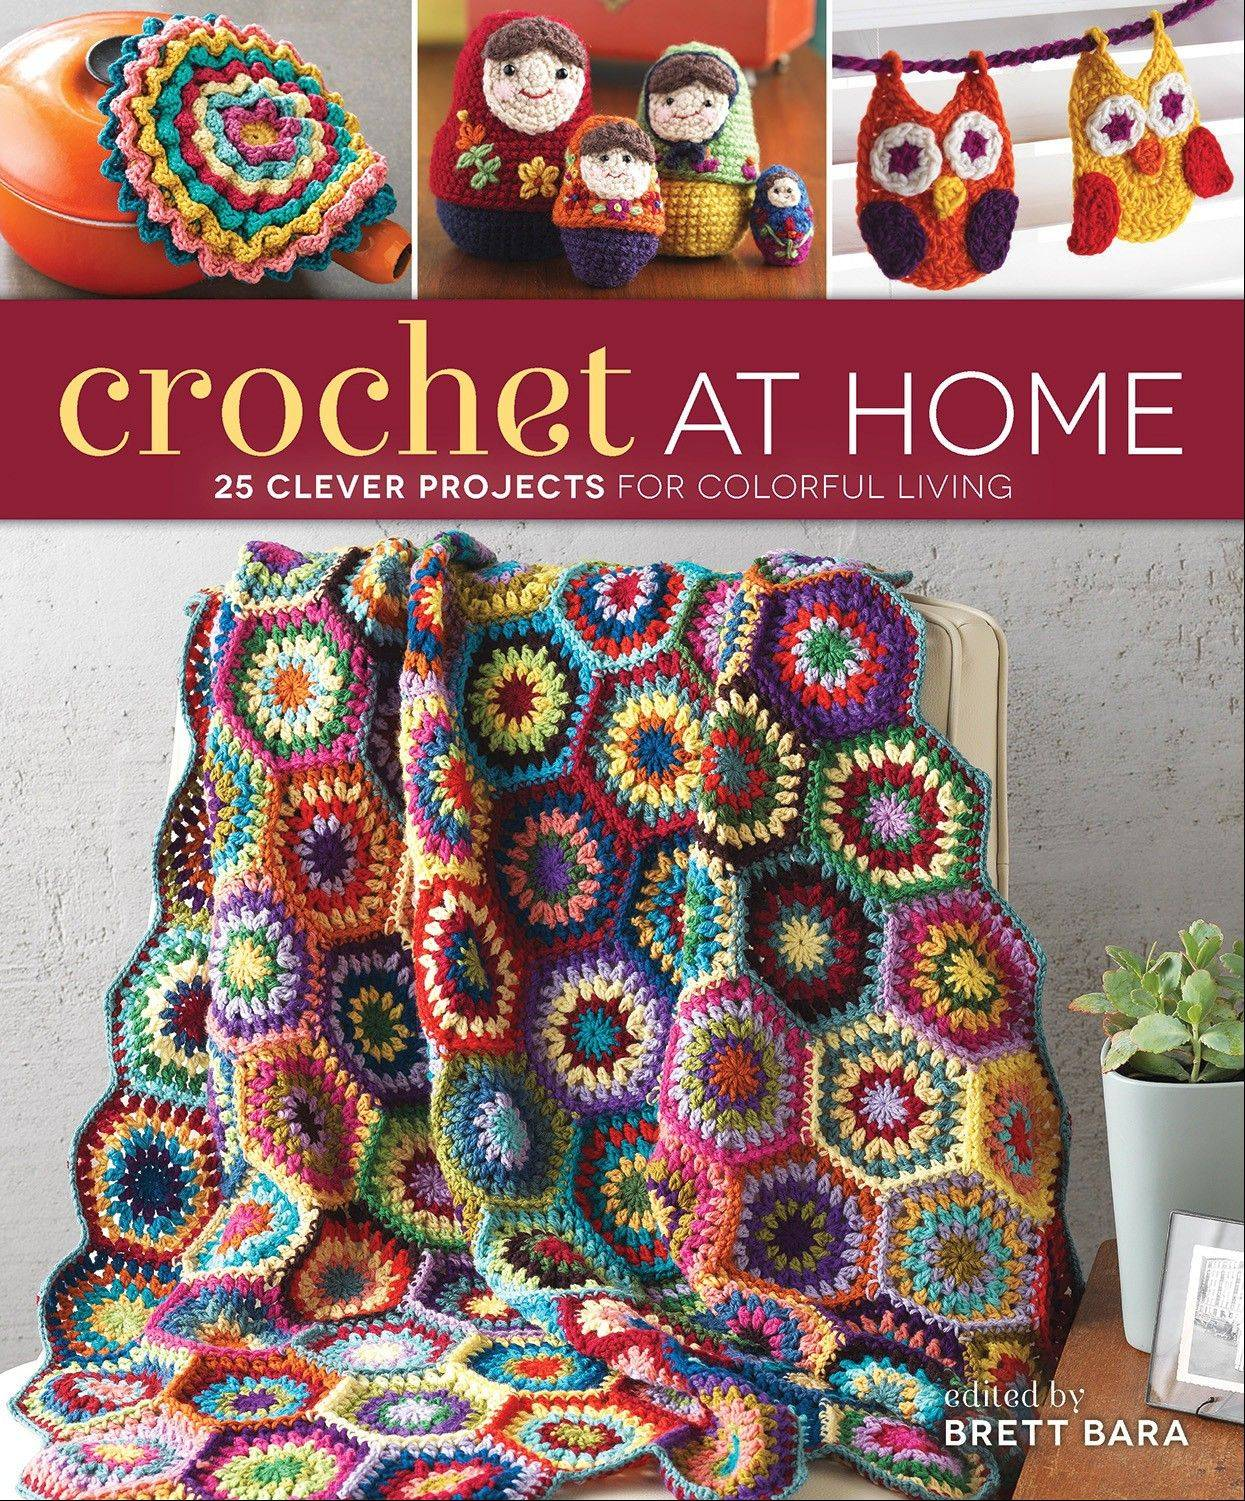 �Crochet at Home,� edited by Brett Bara (Interweave, 2013).